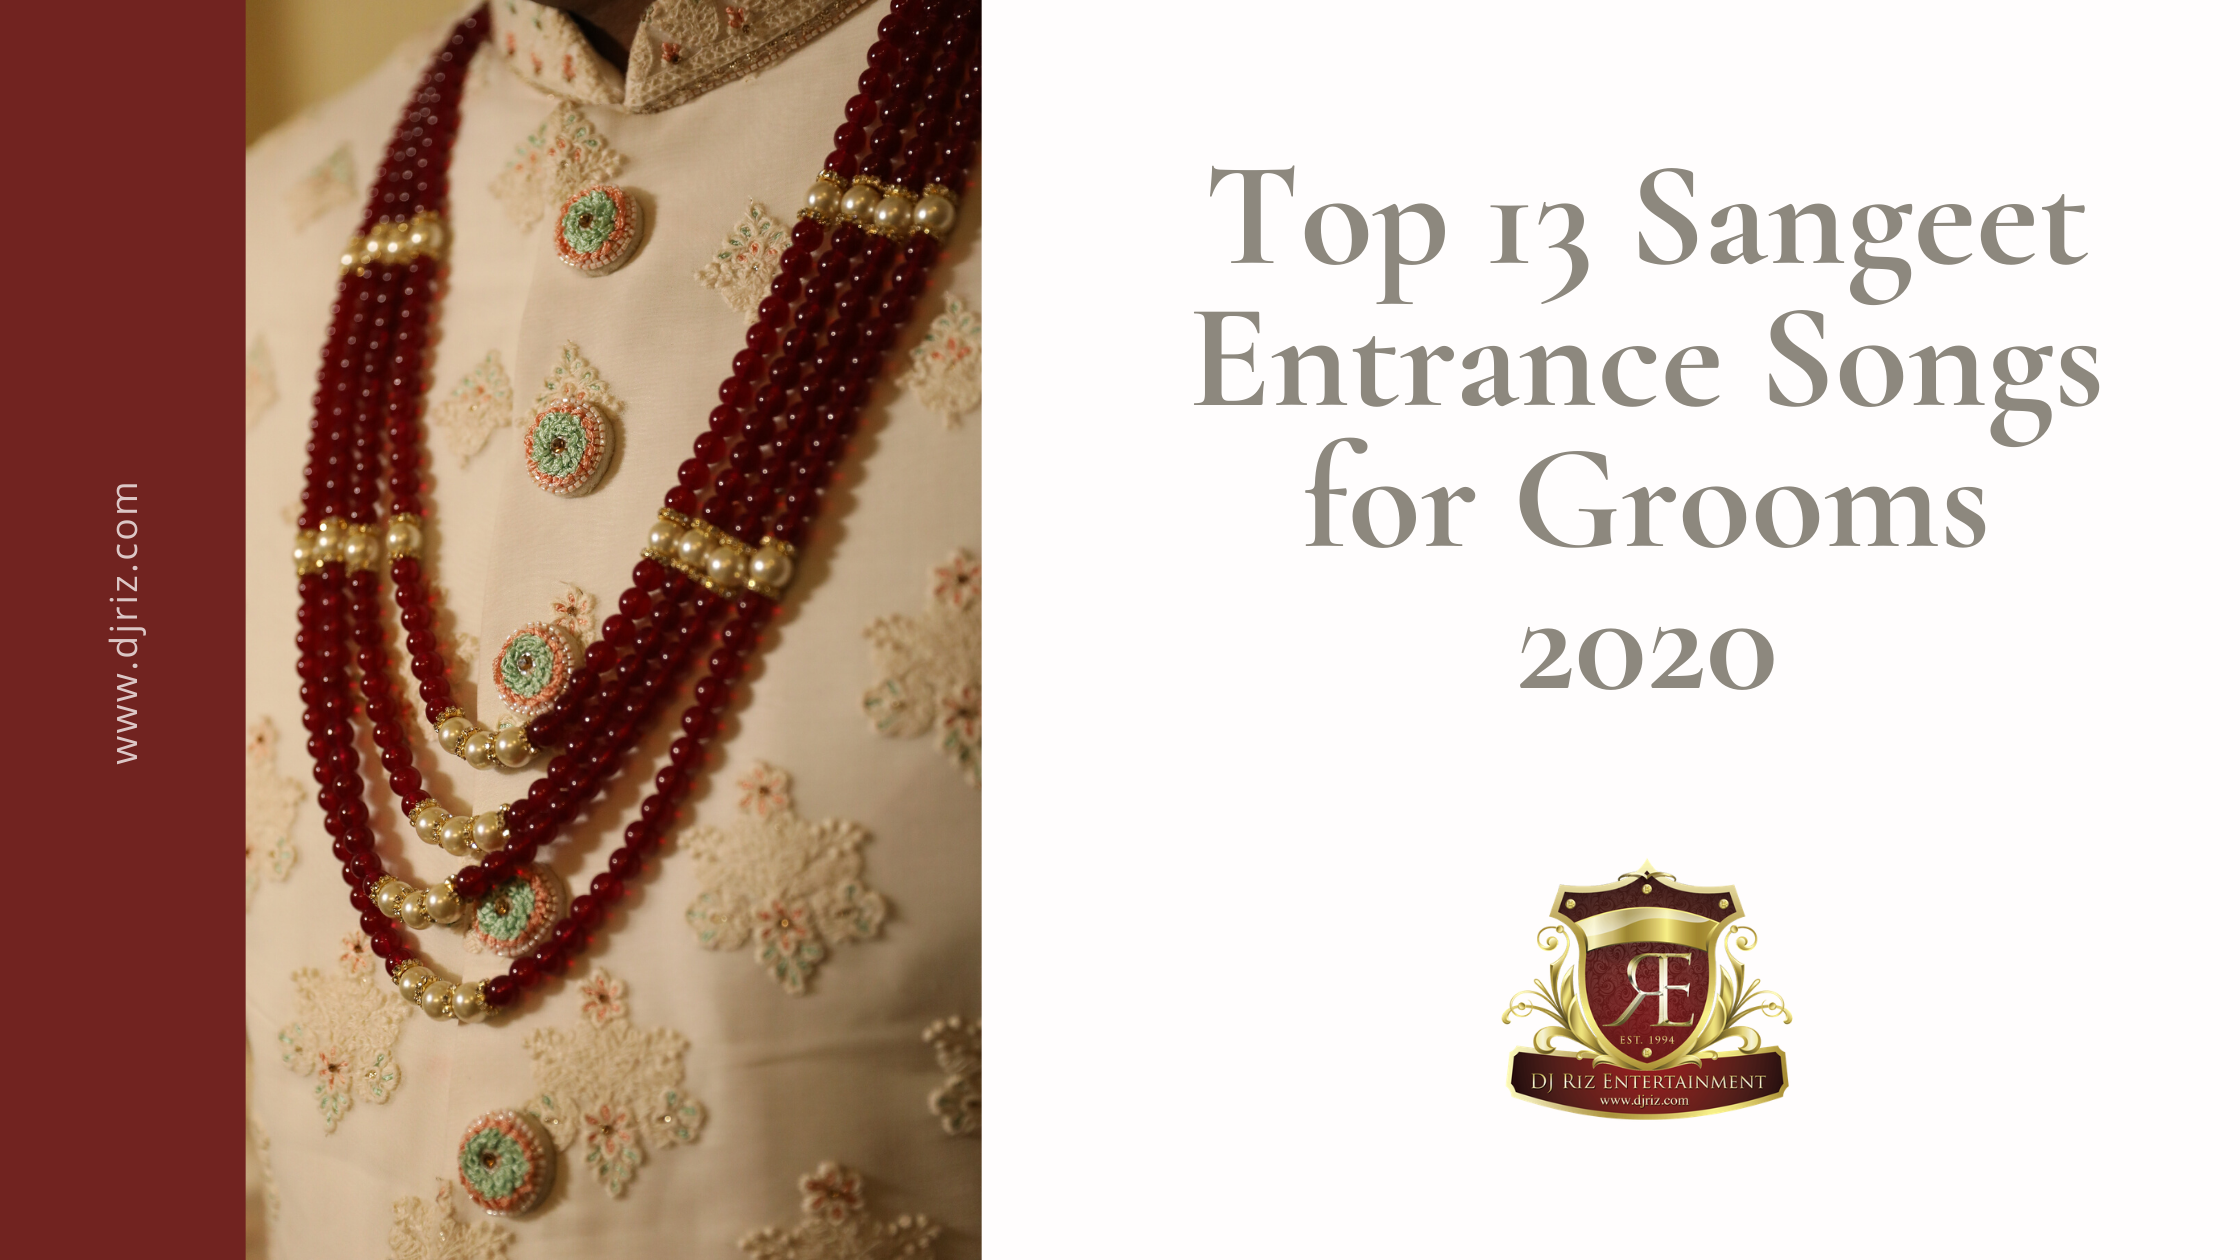 Sangeet Entrance Songs for Grooms 2020